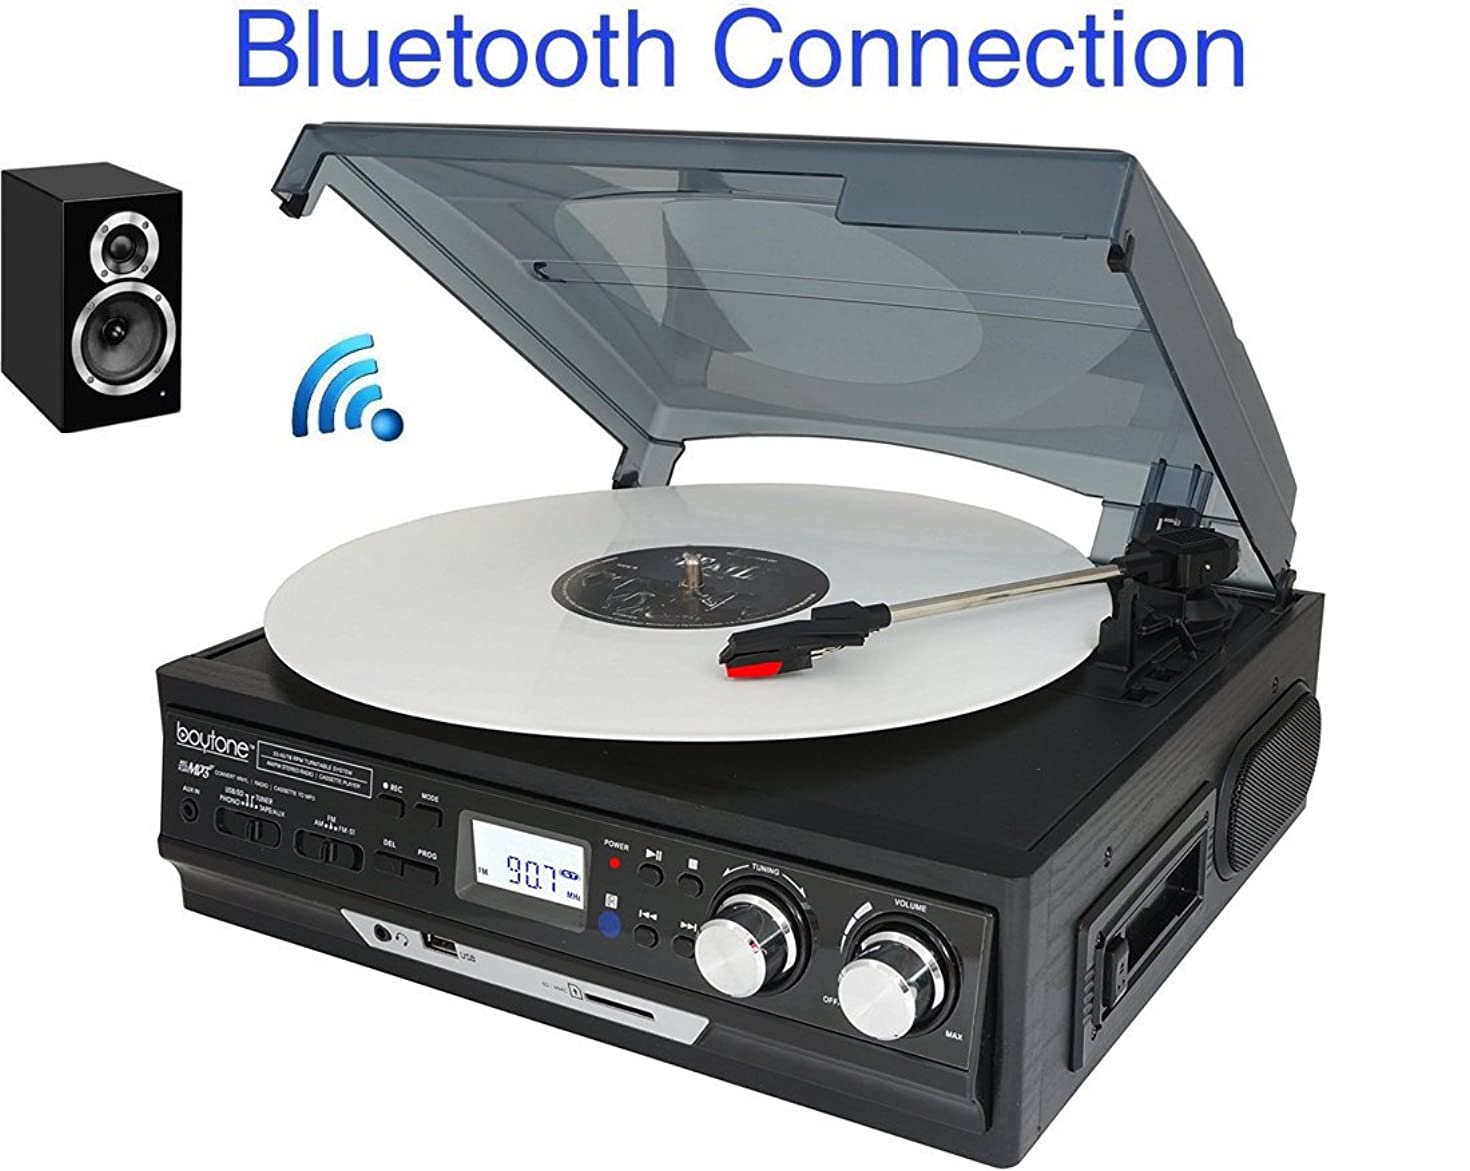 Boytone BT-37B-C Bluetooth 3-Speed Stereo Turntable, Wireless Connect to Devices Speaker(Bluetooth Out Transfer), 2 Built-in Speakers, LCD Display, AM/FM Radio, USB/SD/AUX+ Cassette Player/MP3